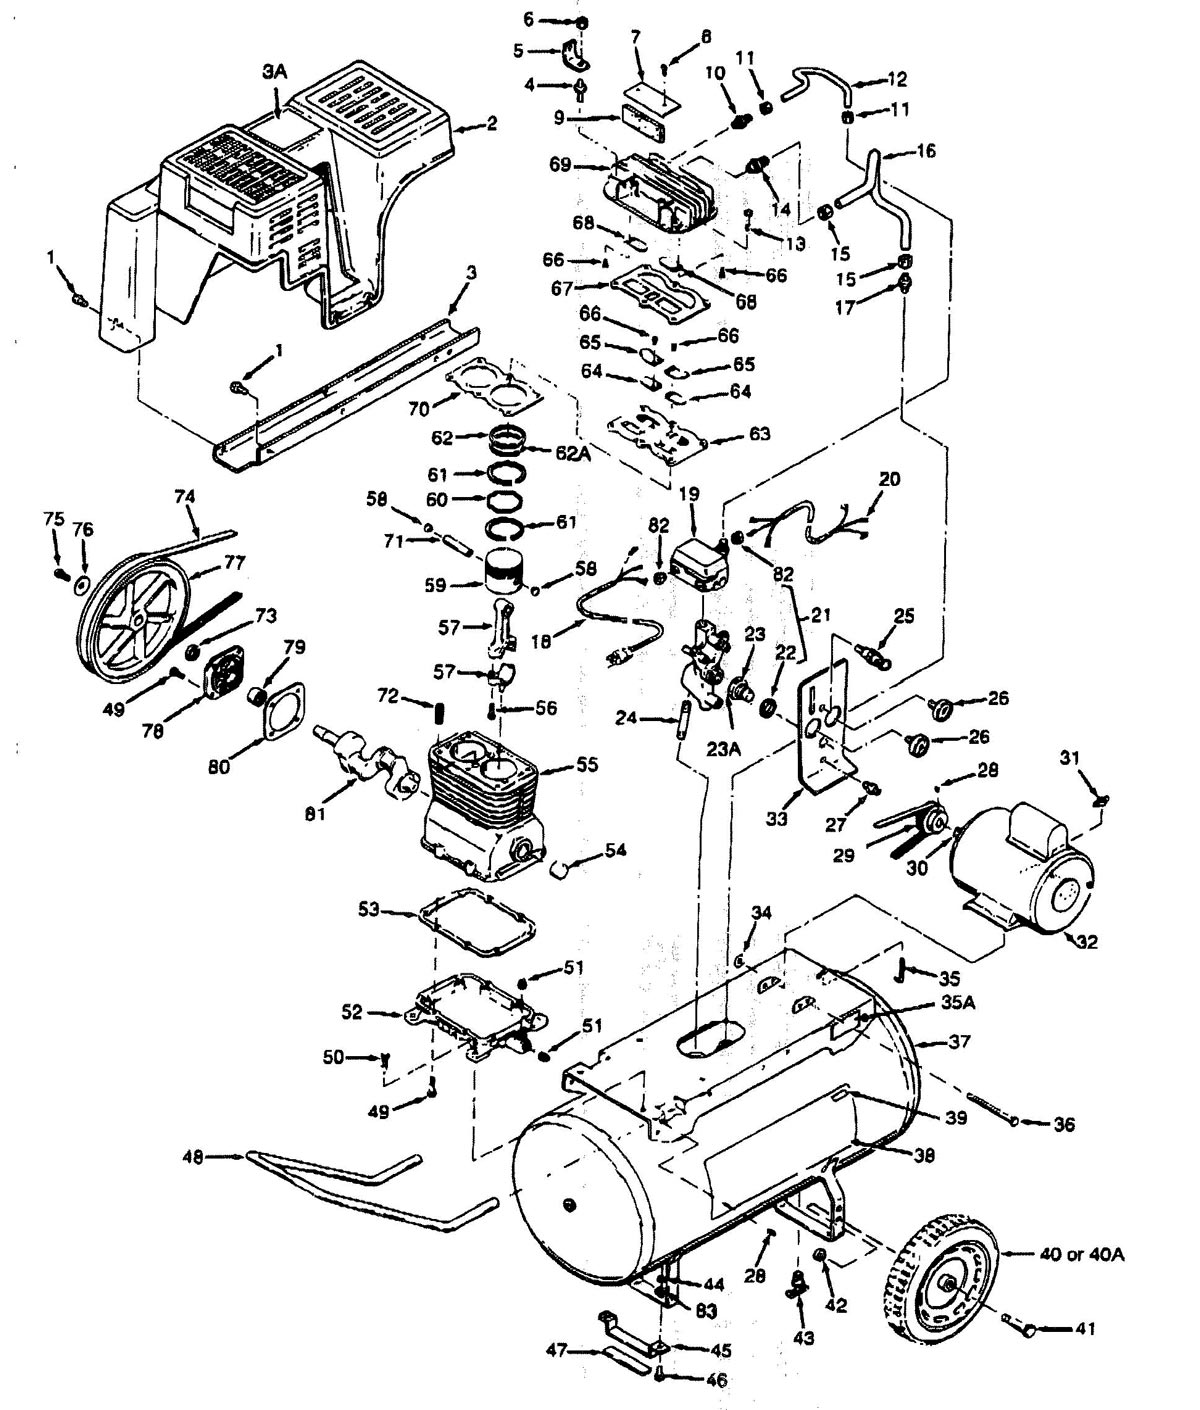 919.176210_parts sears craftsman 919 176311 & 919 176330 air compressor parts sears 1 hp air compressor wiring diagram at crackthecode.co